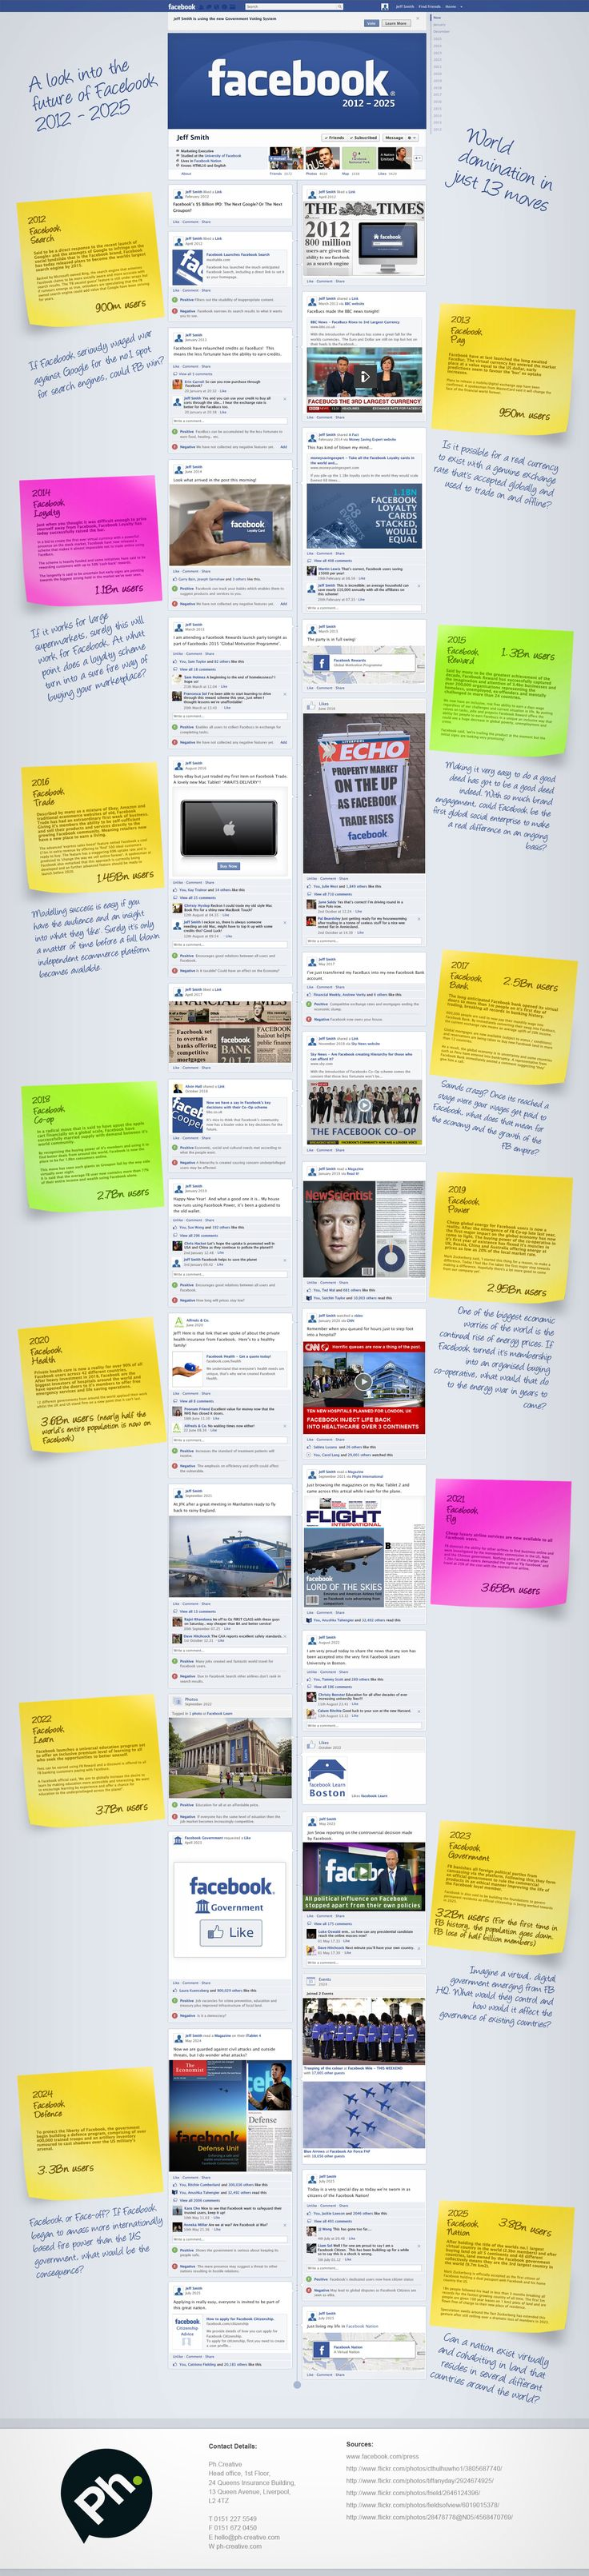 A Look Into the Future of Facebook 2012-2025. #infographic im Facebook Timeline Style - allerdings mit umgedrehter Zeitfolge ;)